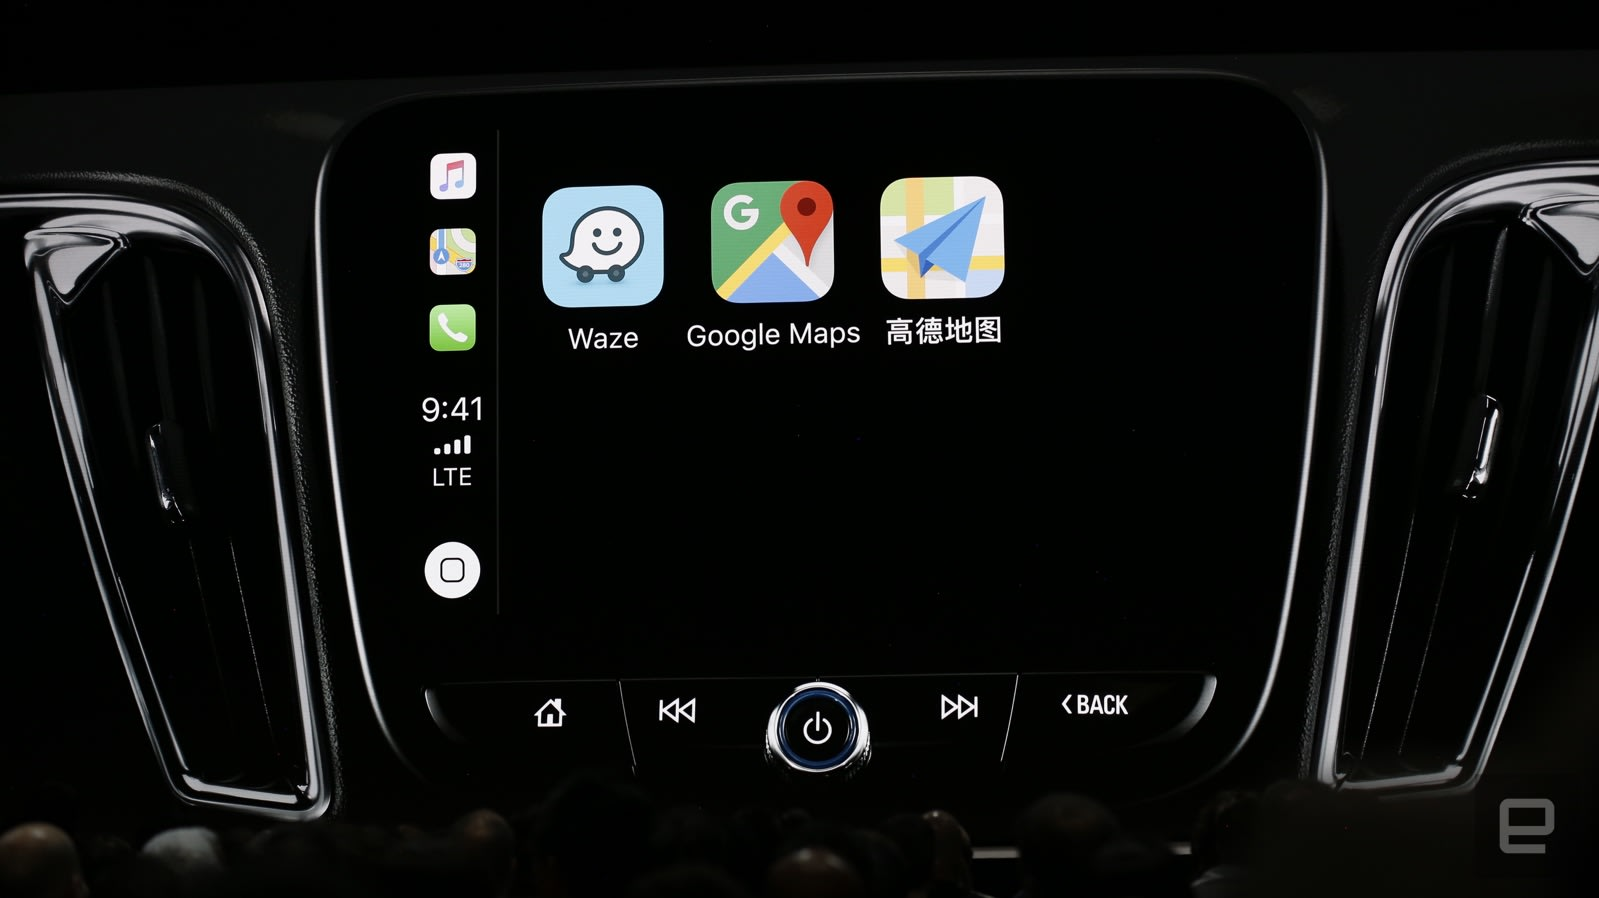 Apple CarPlay will add Google Maps and Waze support with iOS 12